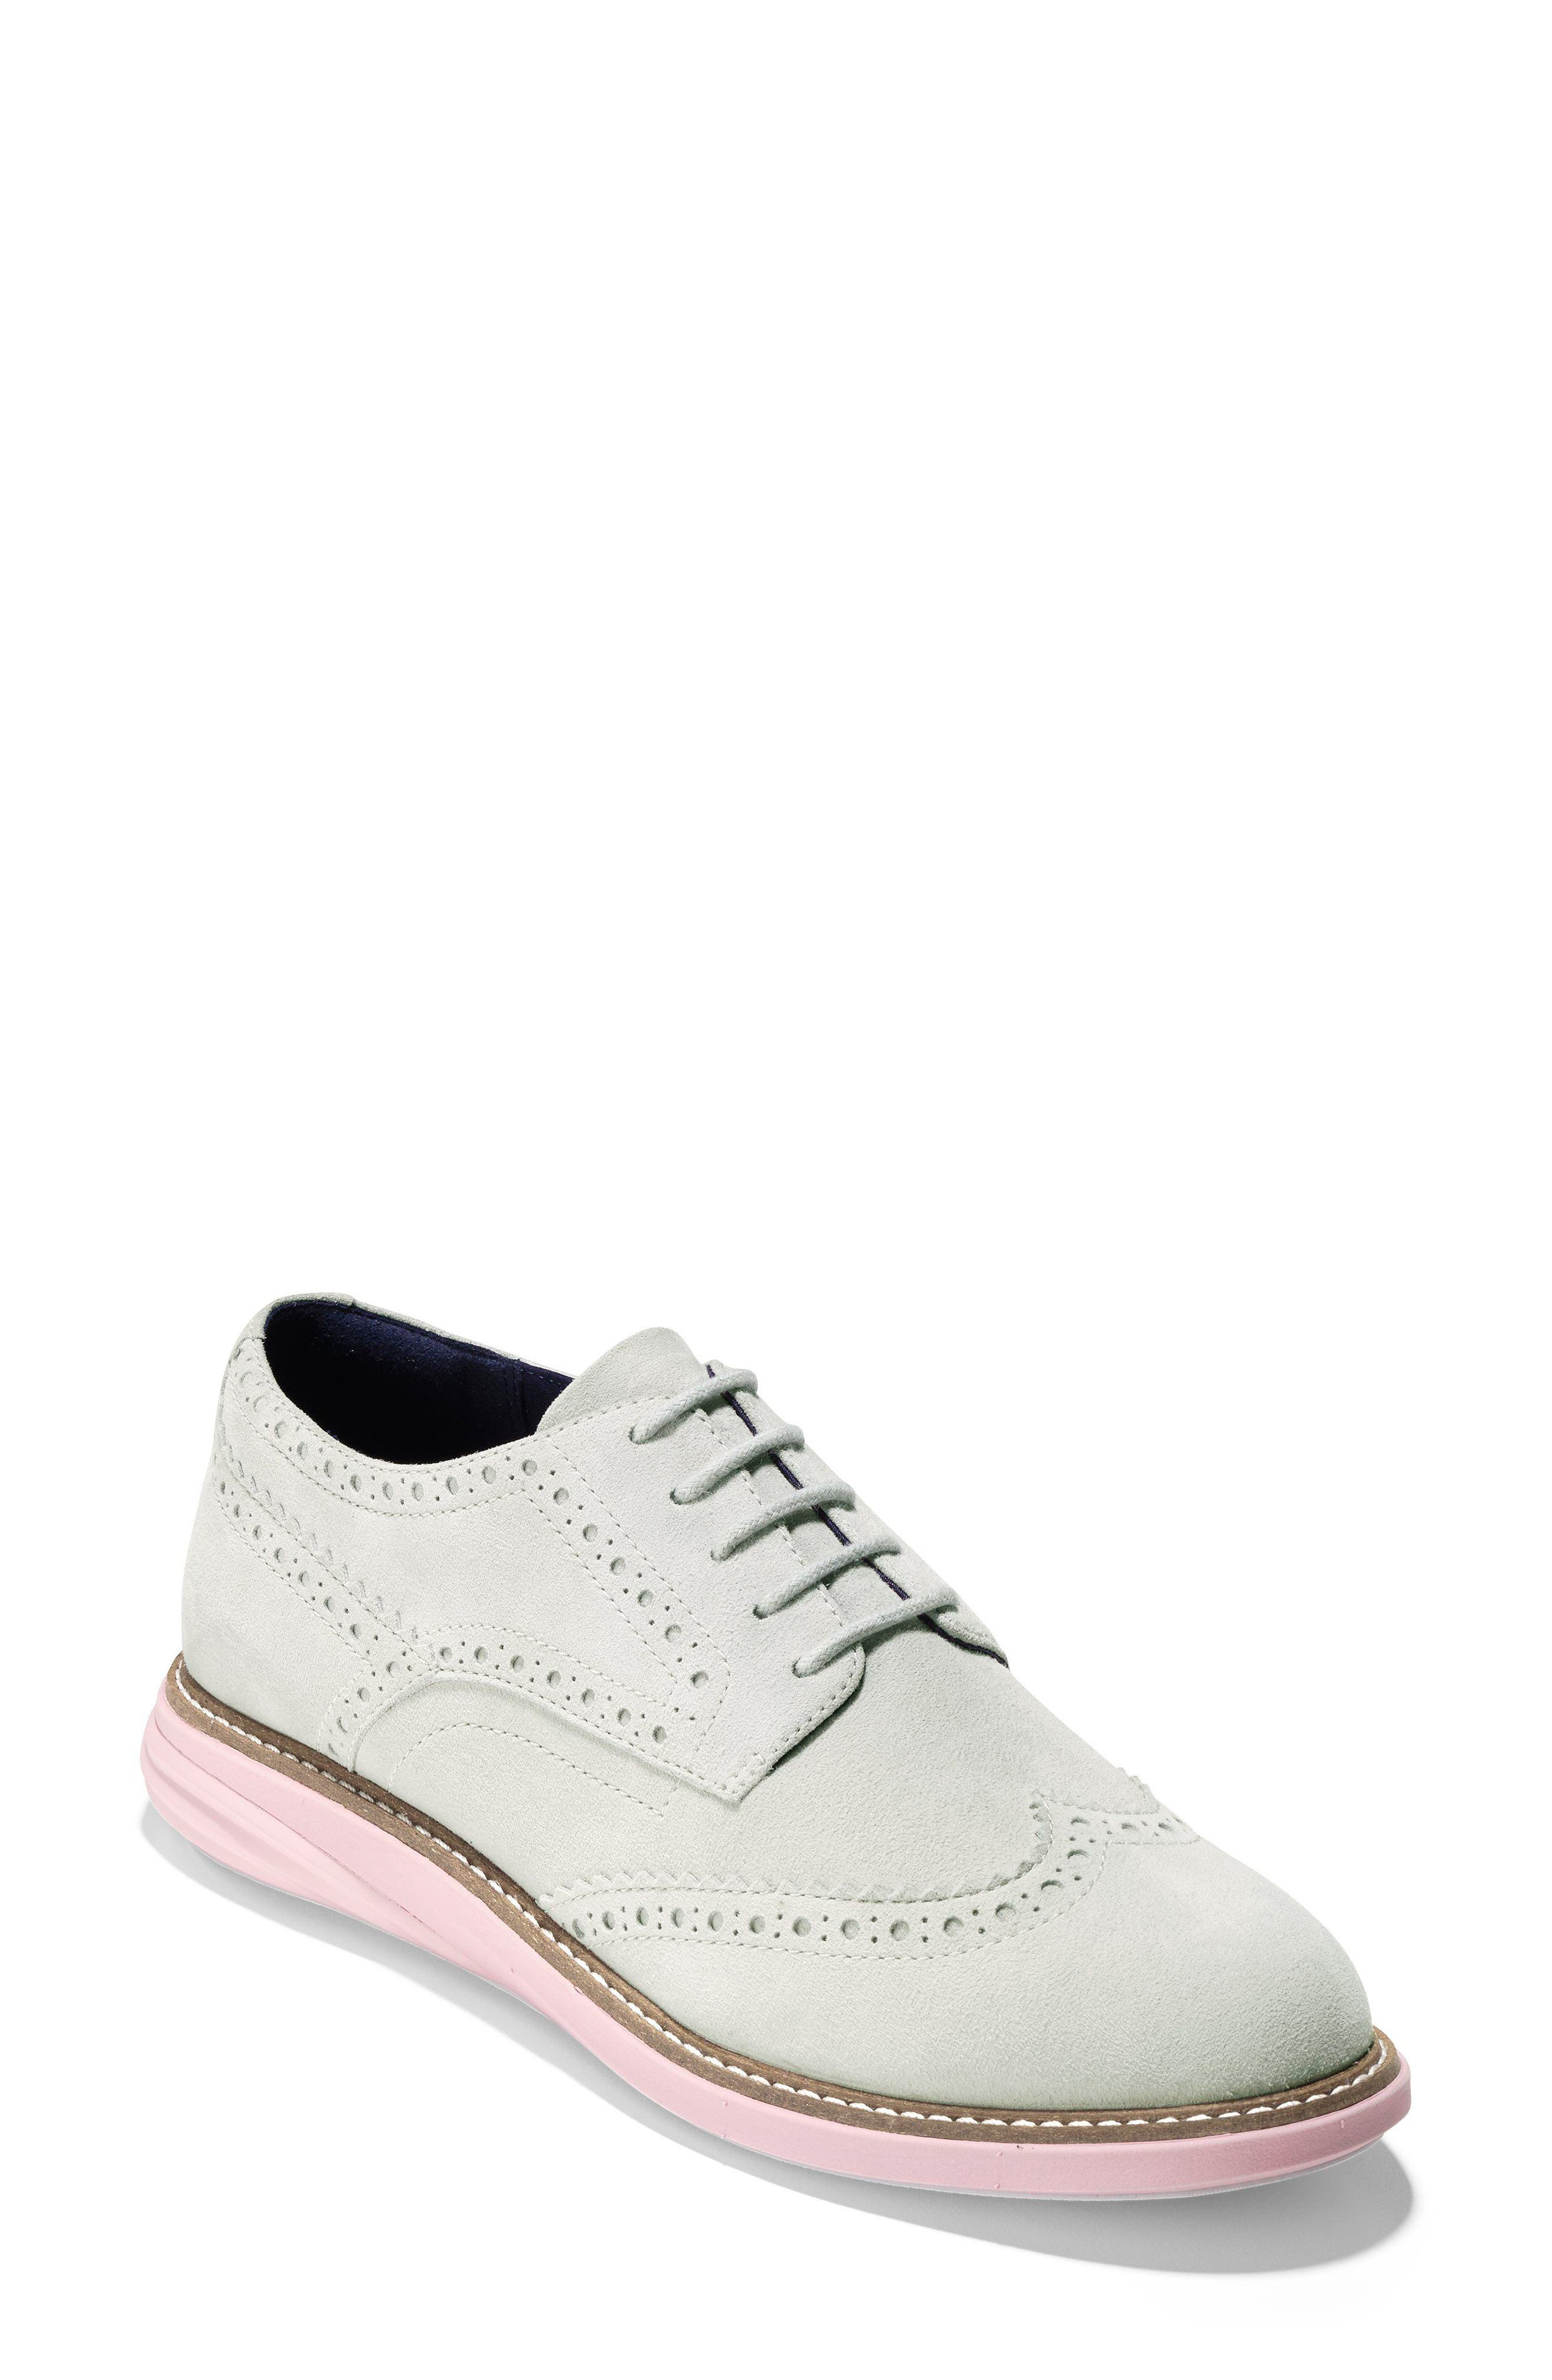 Cole Haan Grandevolution Shortwing Oxford Sneaker (Women)